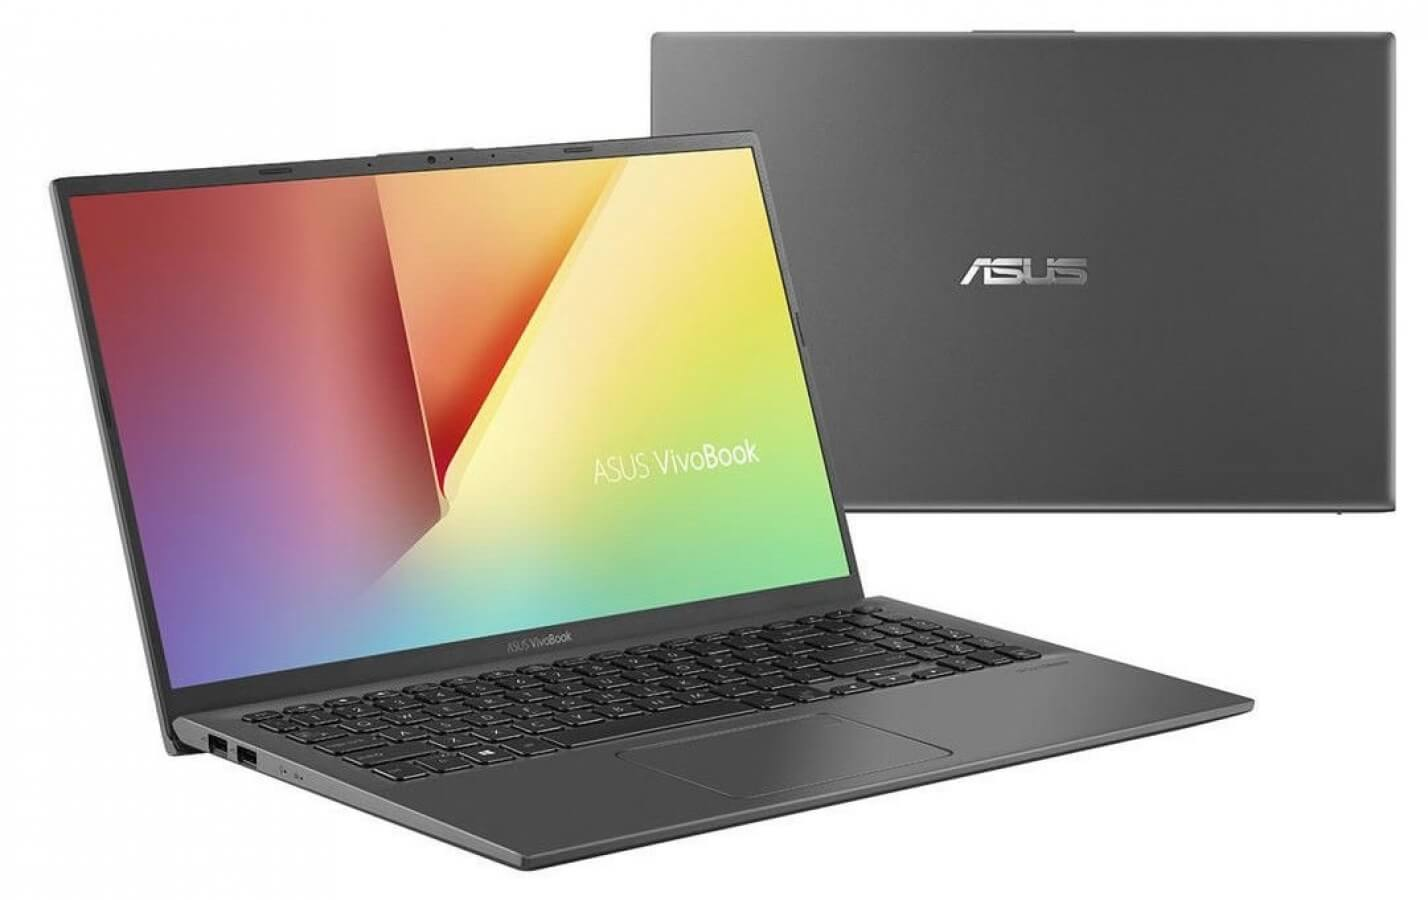 ASUS VIVOBOOK 15 X512FA-BQ830 / I5-8265U 1,6 / 8192 MB DDR4 / 512 GB SSD M.2 / WINDOWS 10 PRO / BLUETOOTH / CAMERA / NOVÝ